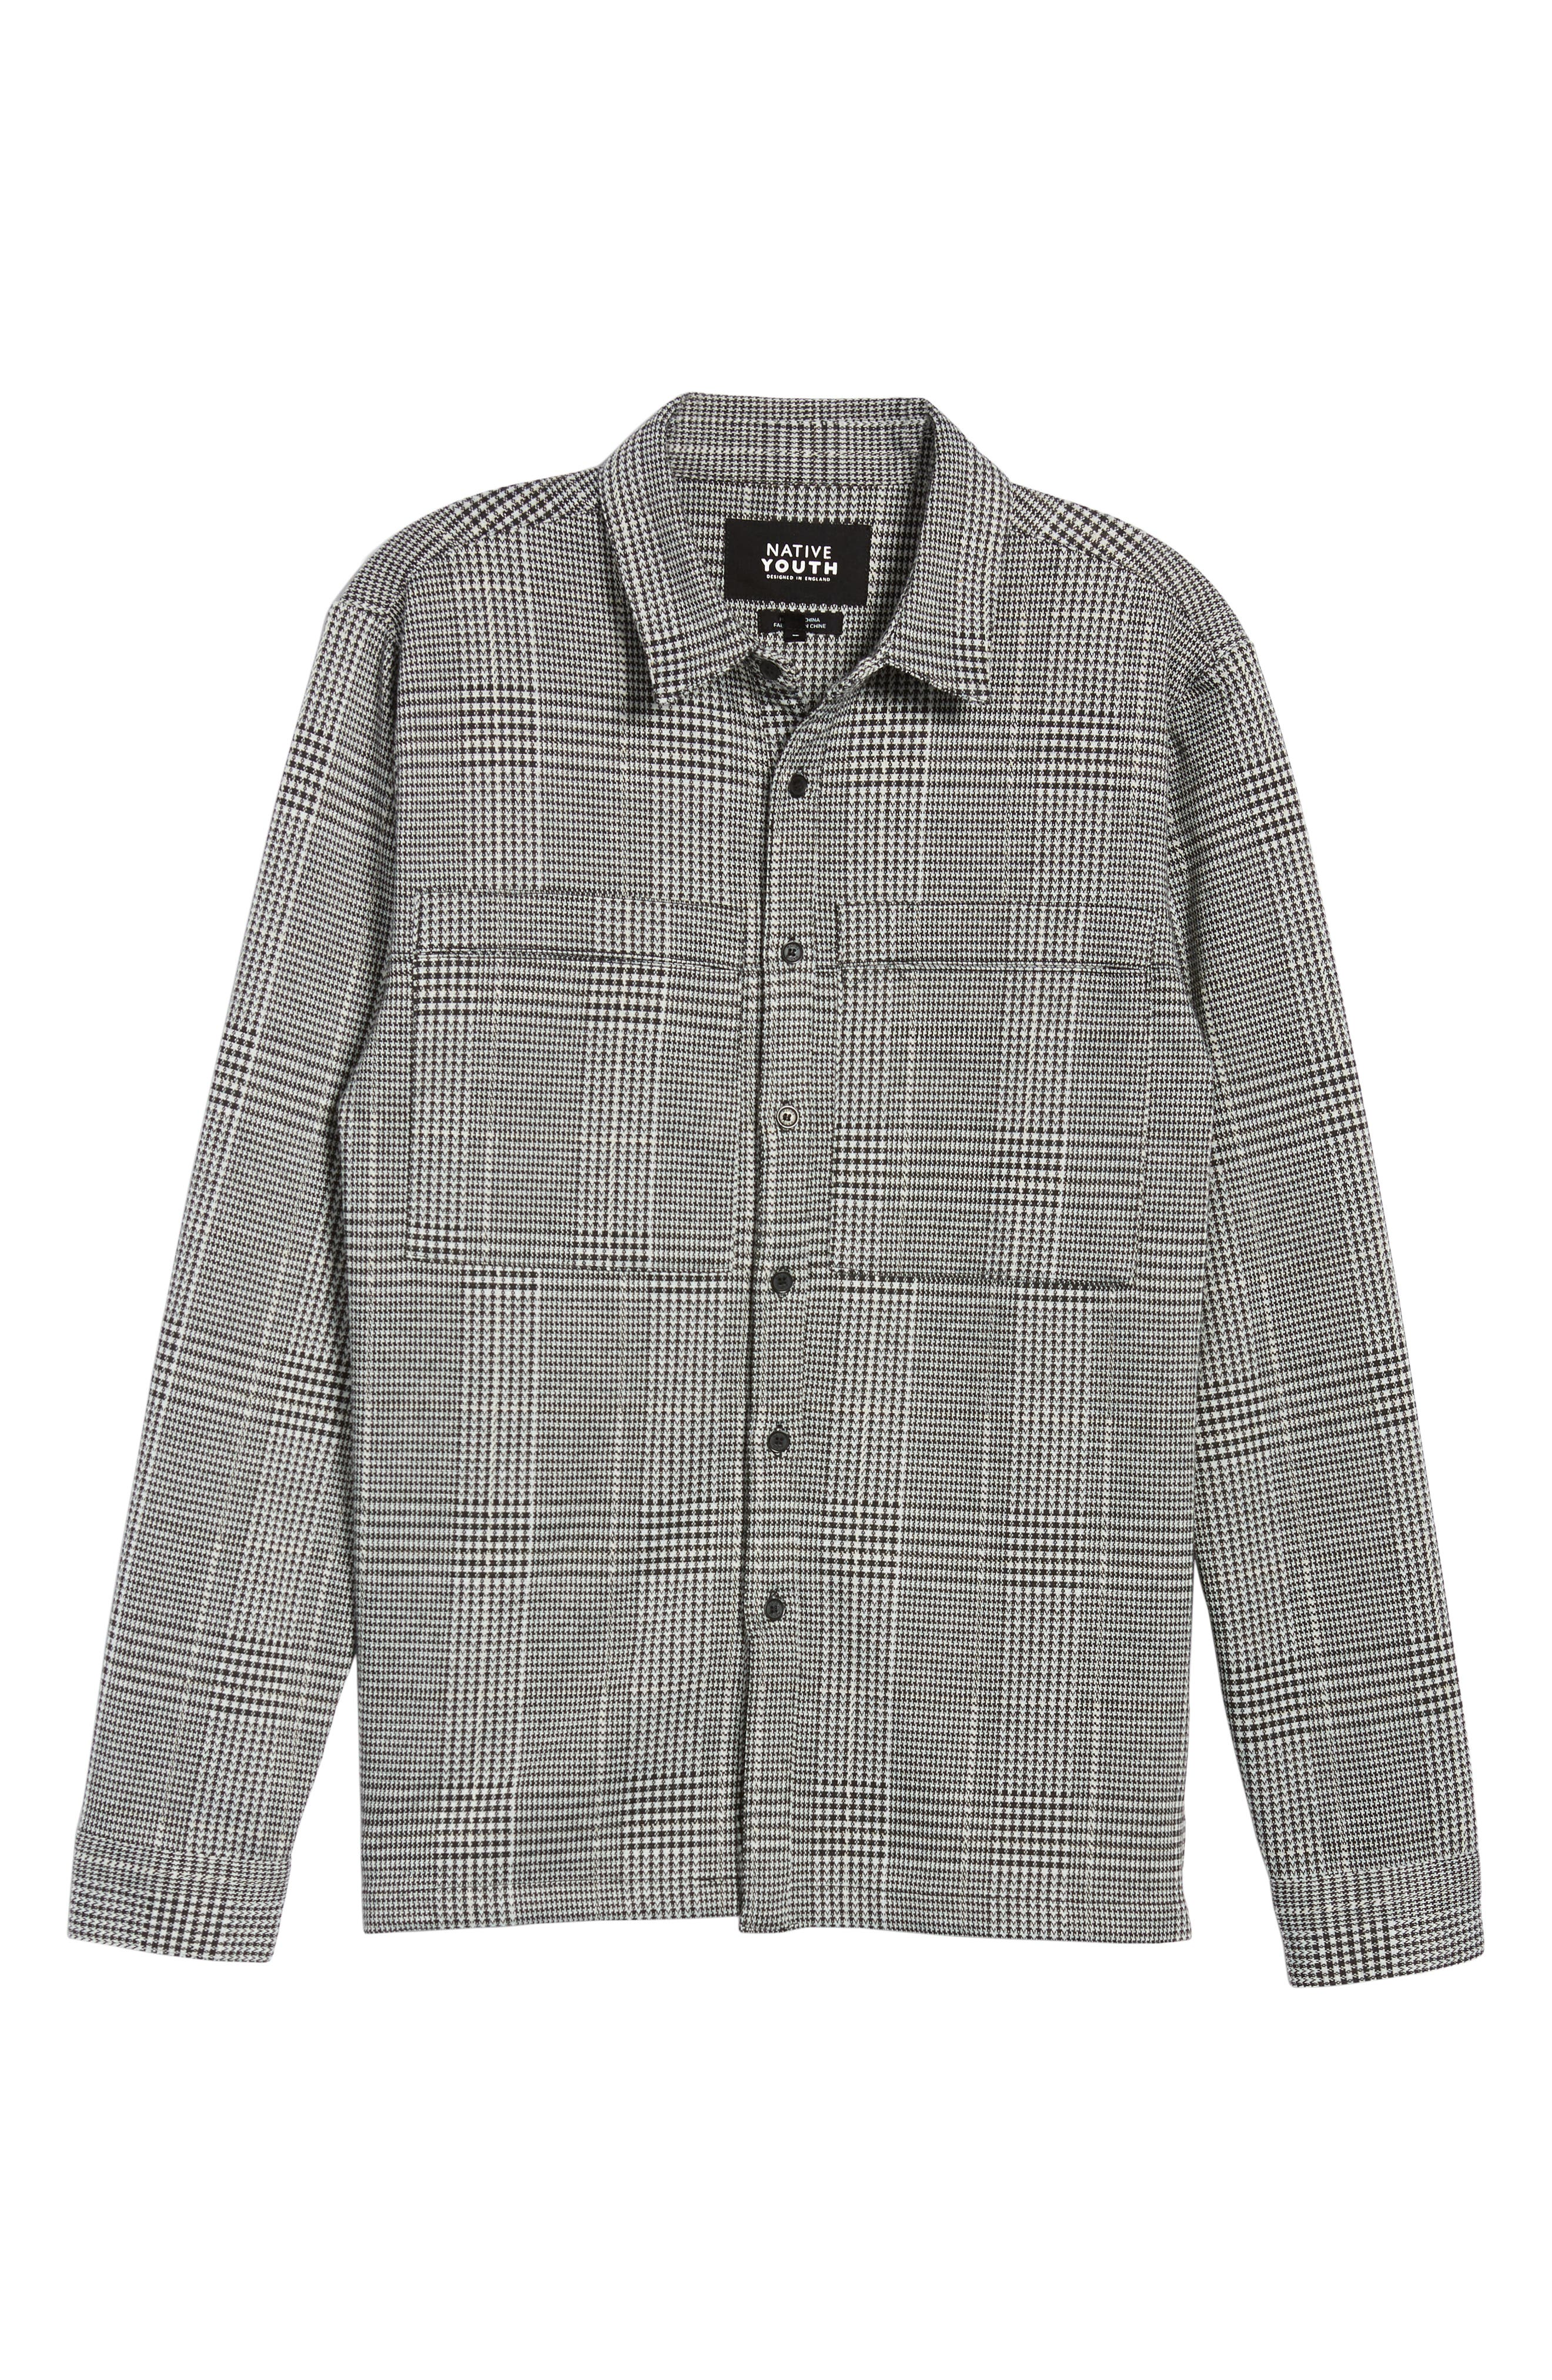 Houndstooth Check Overshirt,                             Alternate thumbnail 6, color,                             BLACK